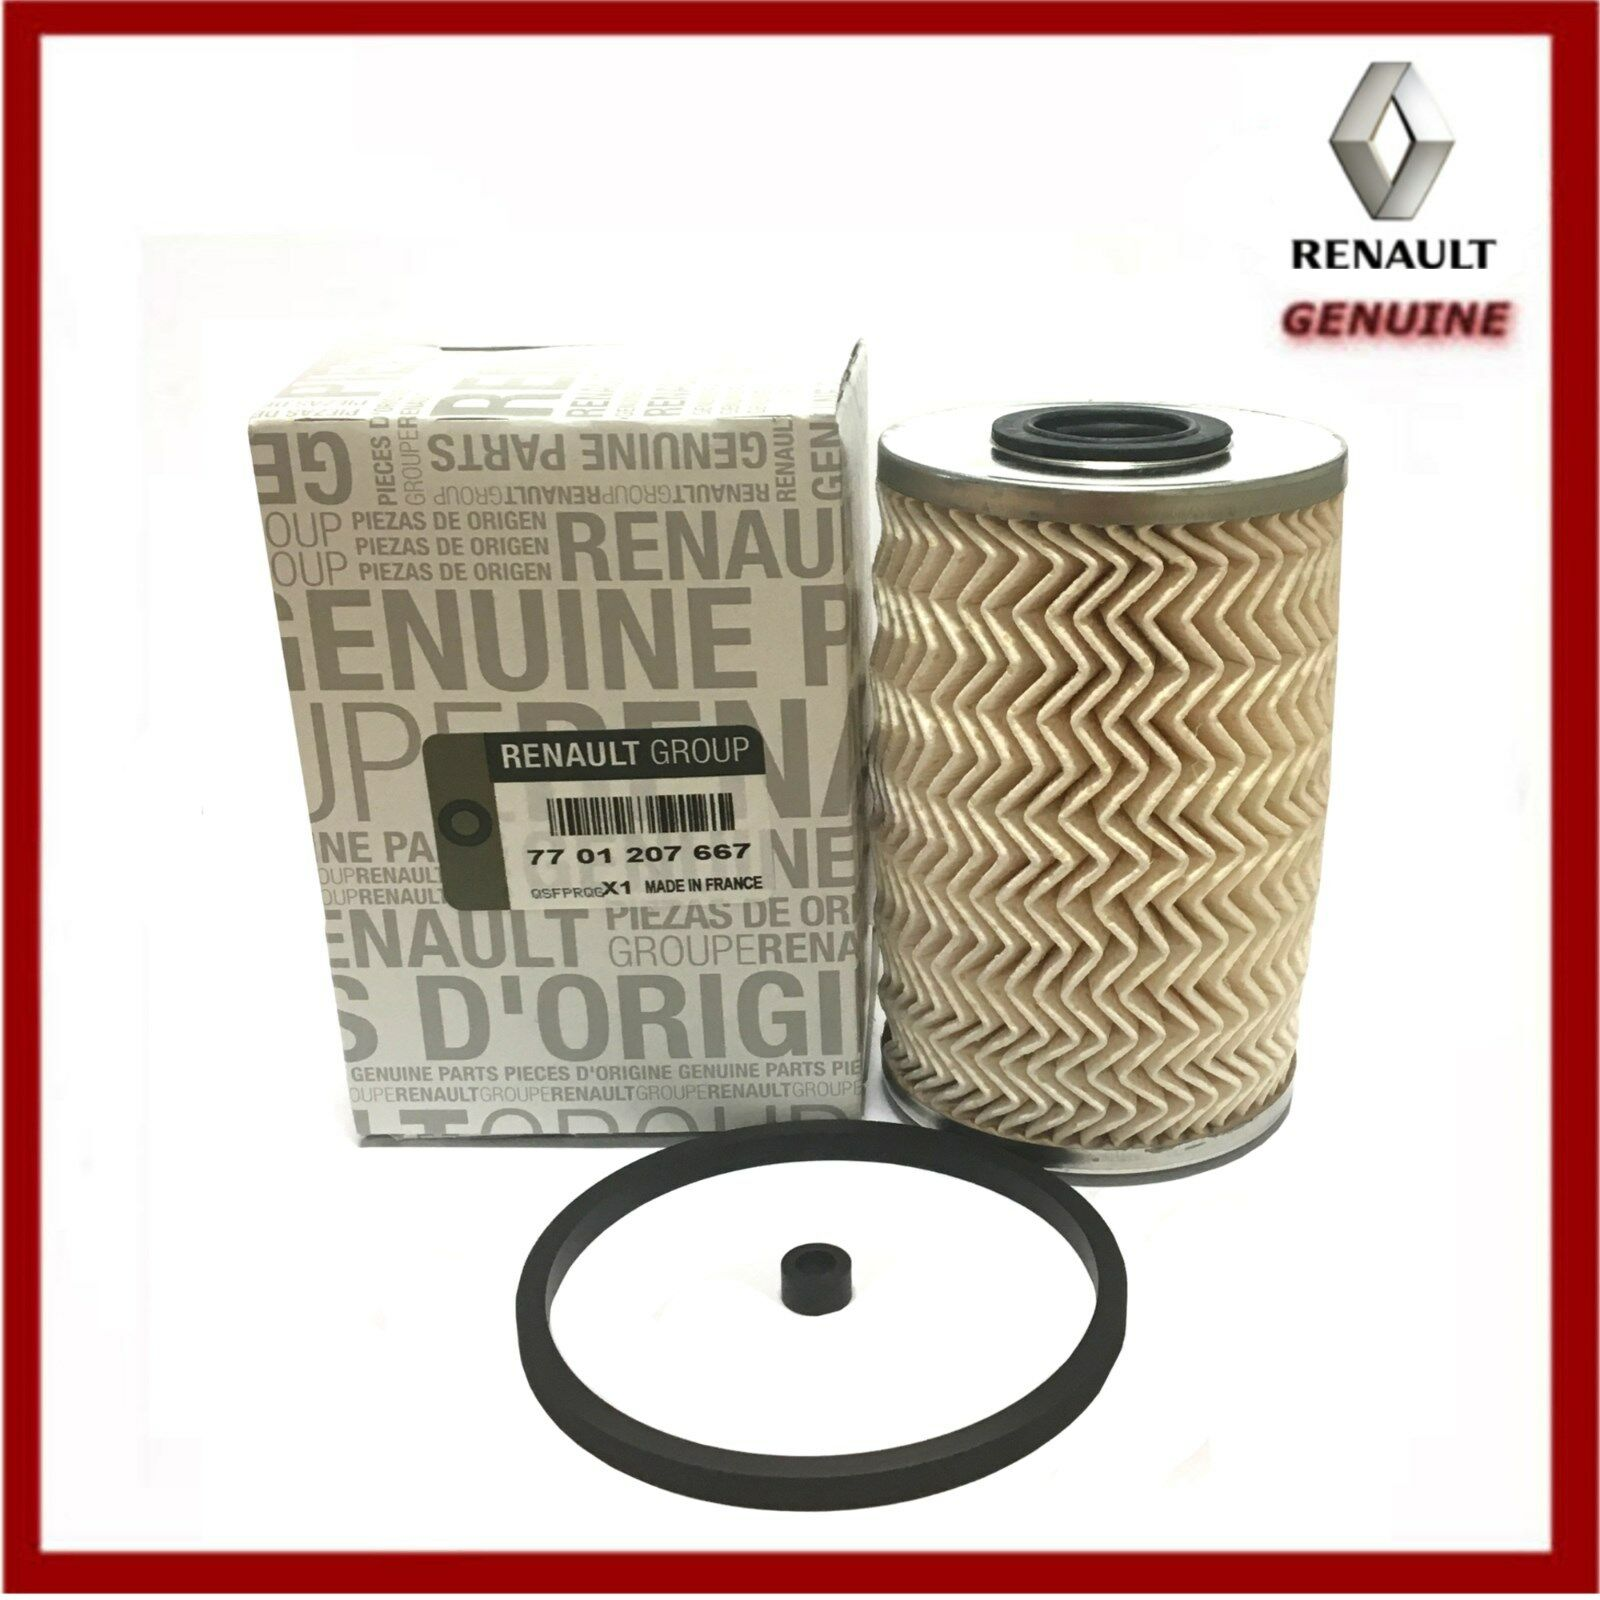 Genuine Renault Trafic Master Dci Diesel Fuel Filter New Deisel Mann Bases 7701207667 1 Of 1free Shipping See More